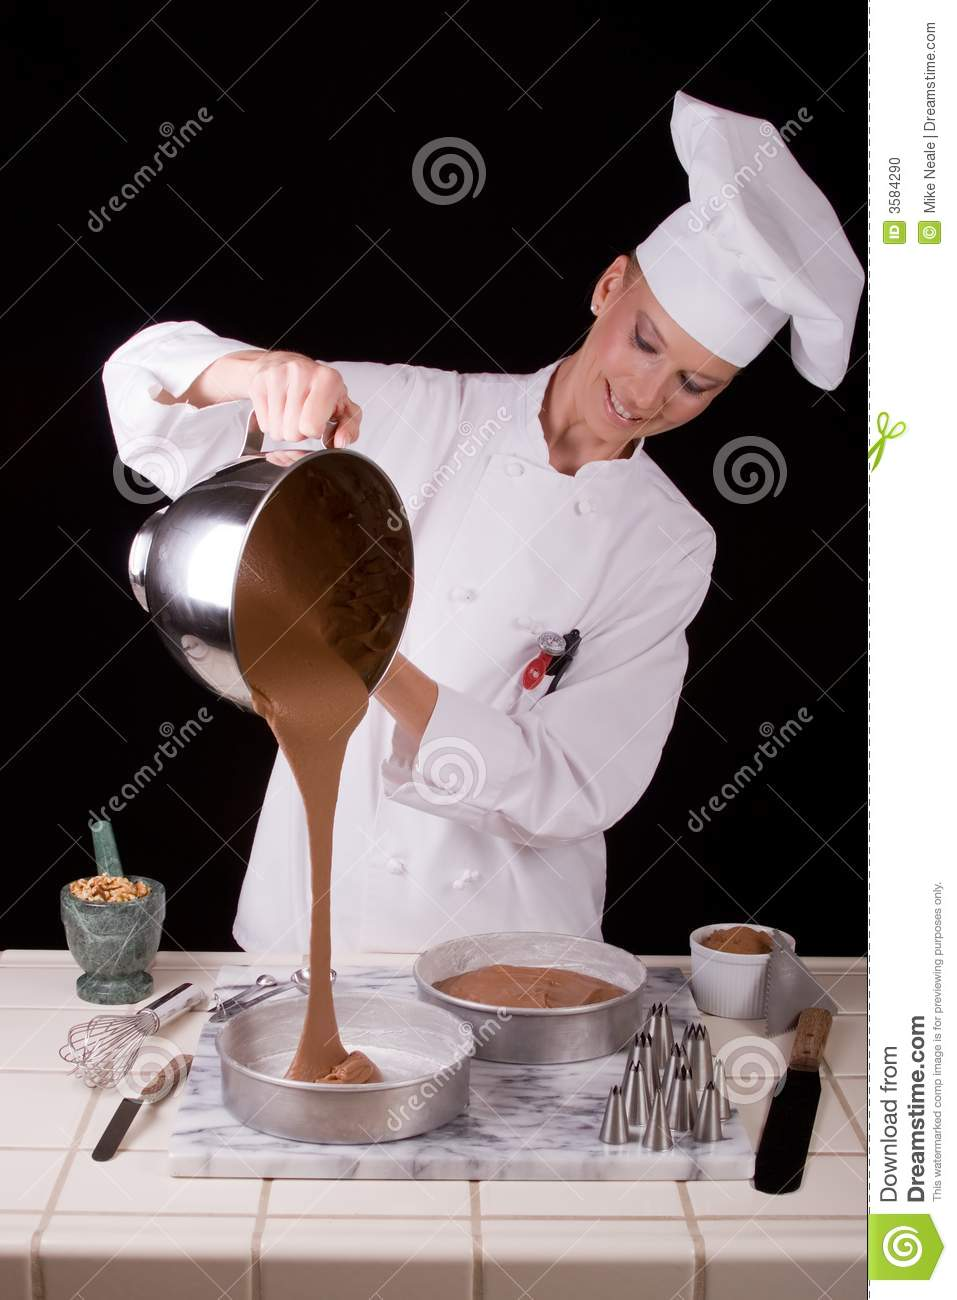 Pouring Cake Batter Stock Photo Image Of Cake Craft